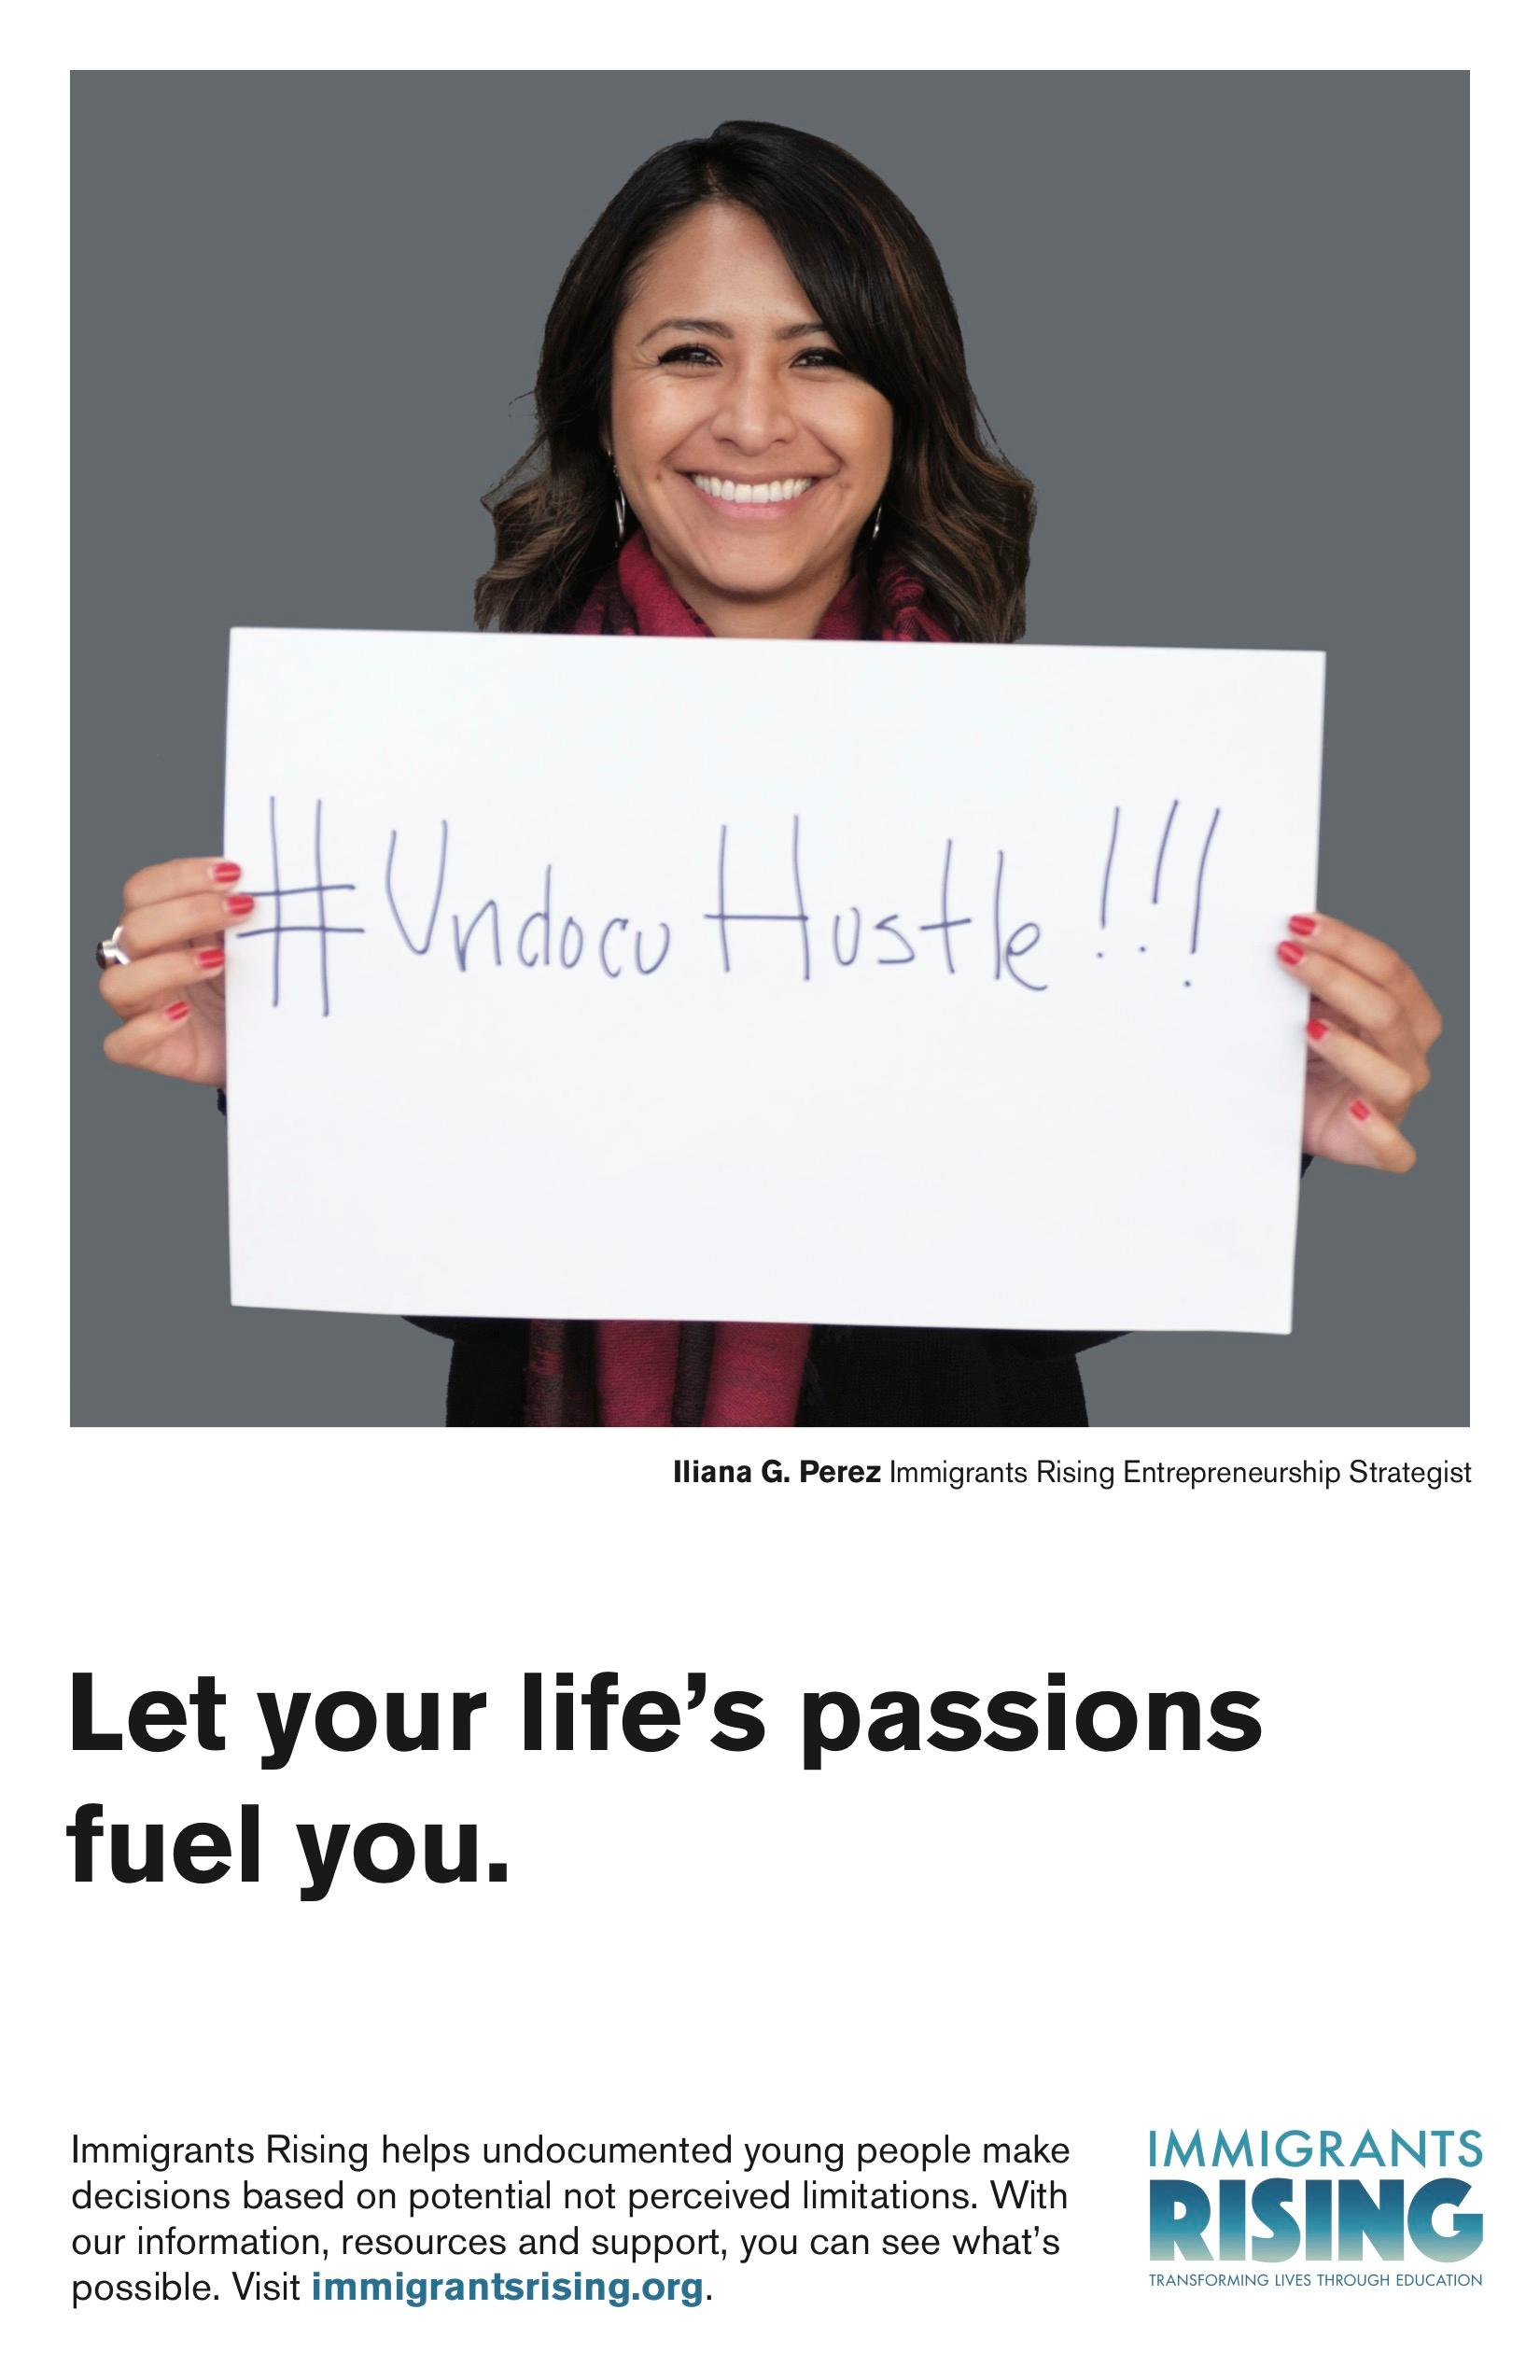 Let your life's passions fuel you